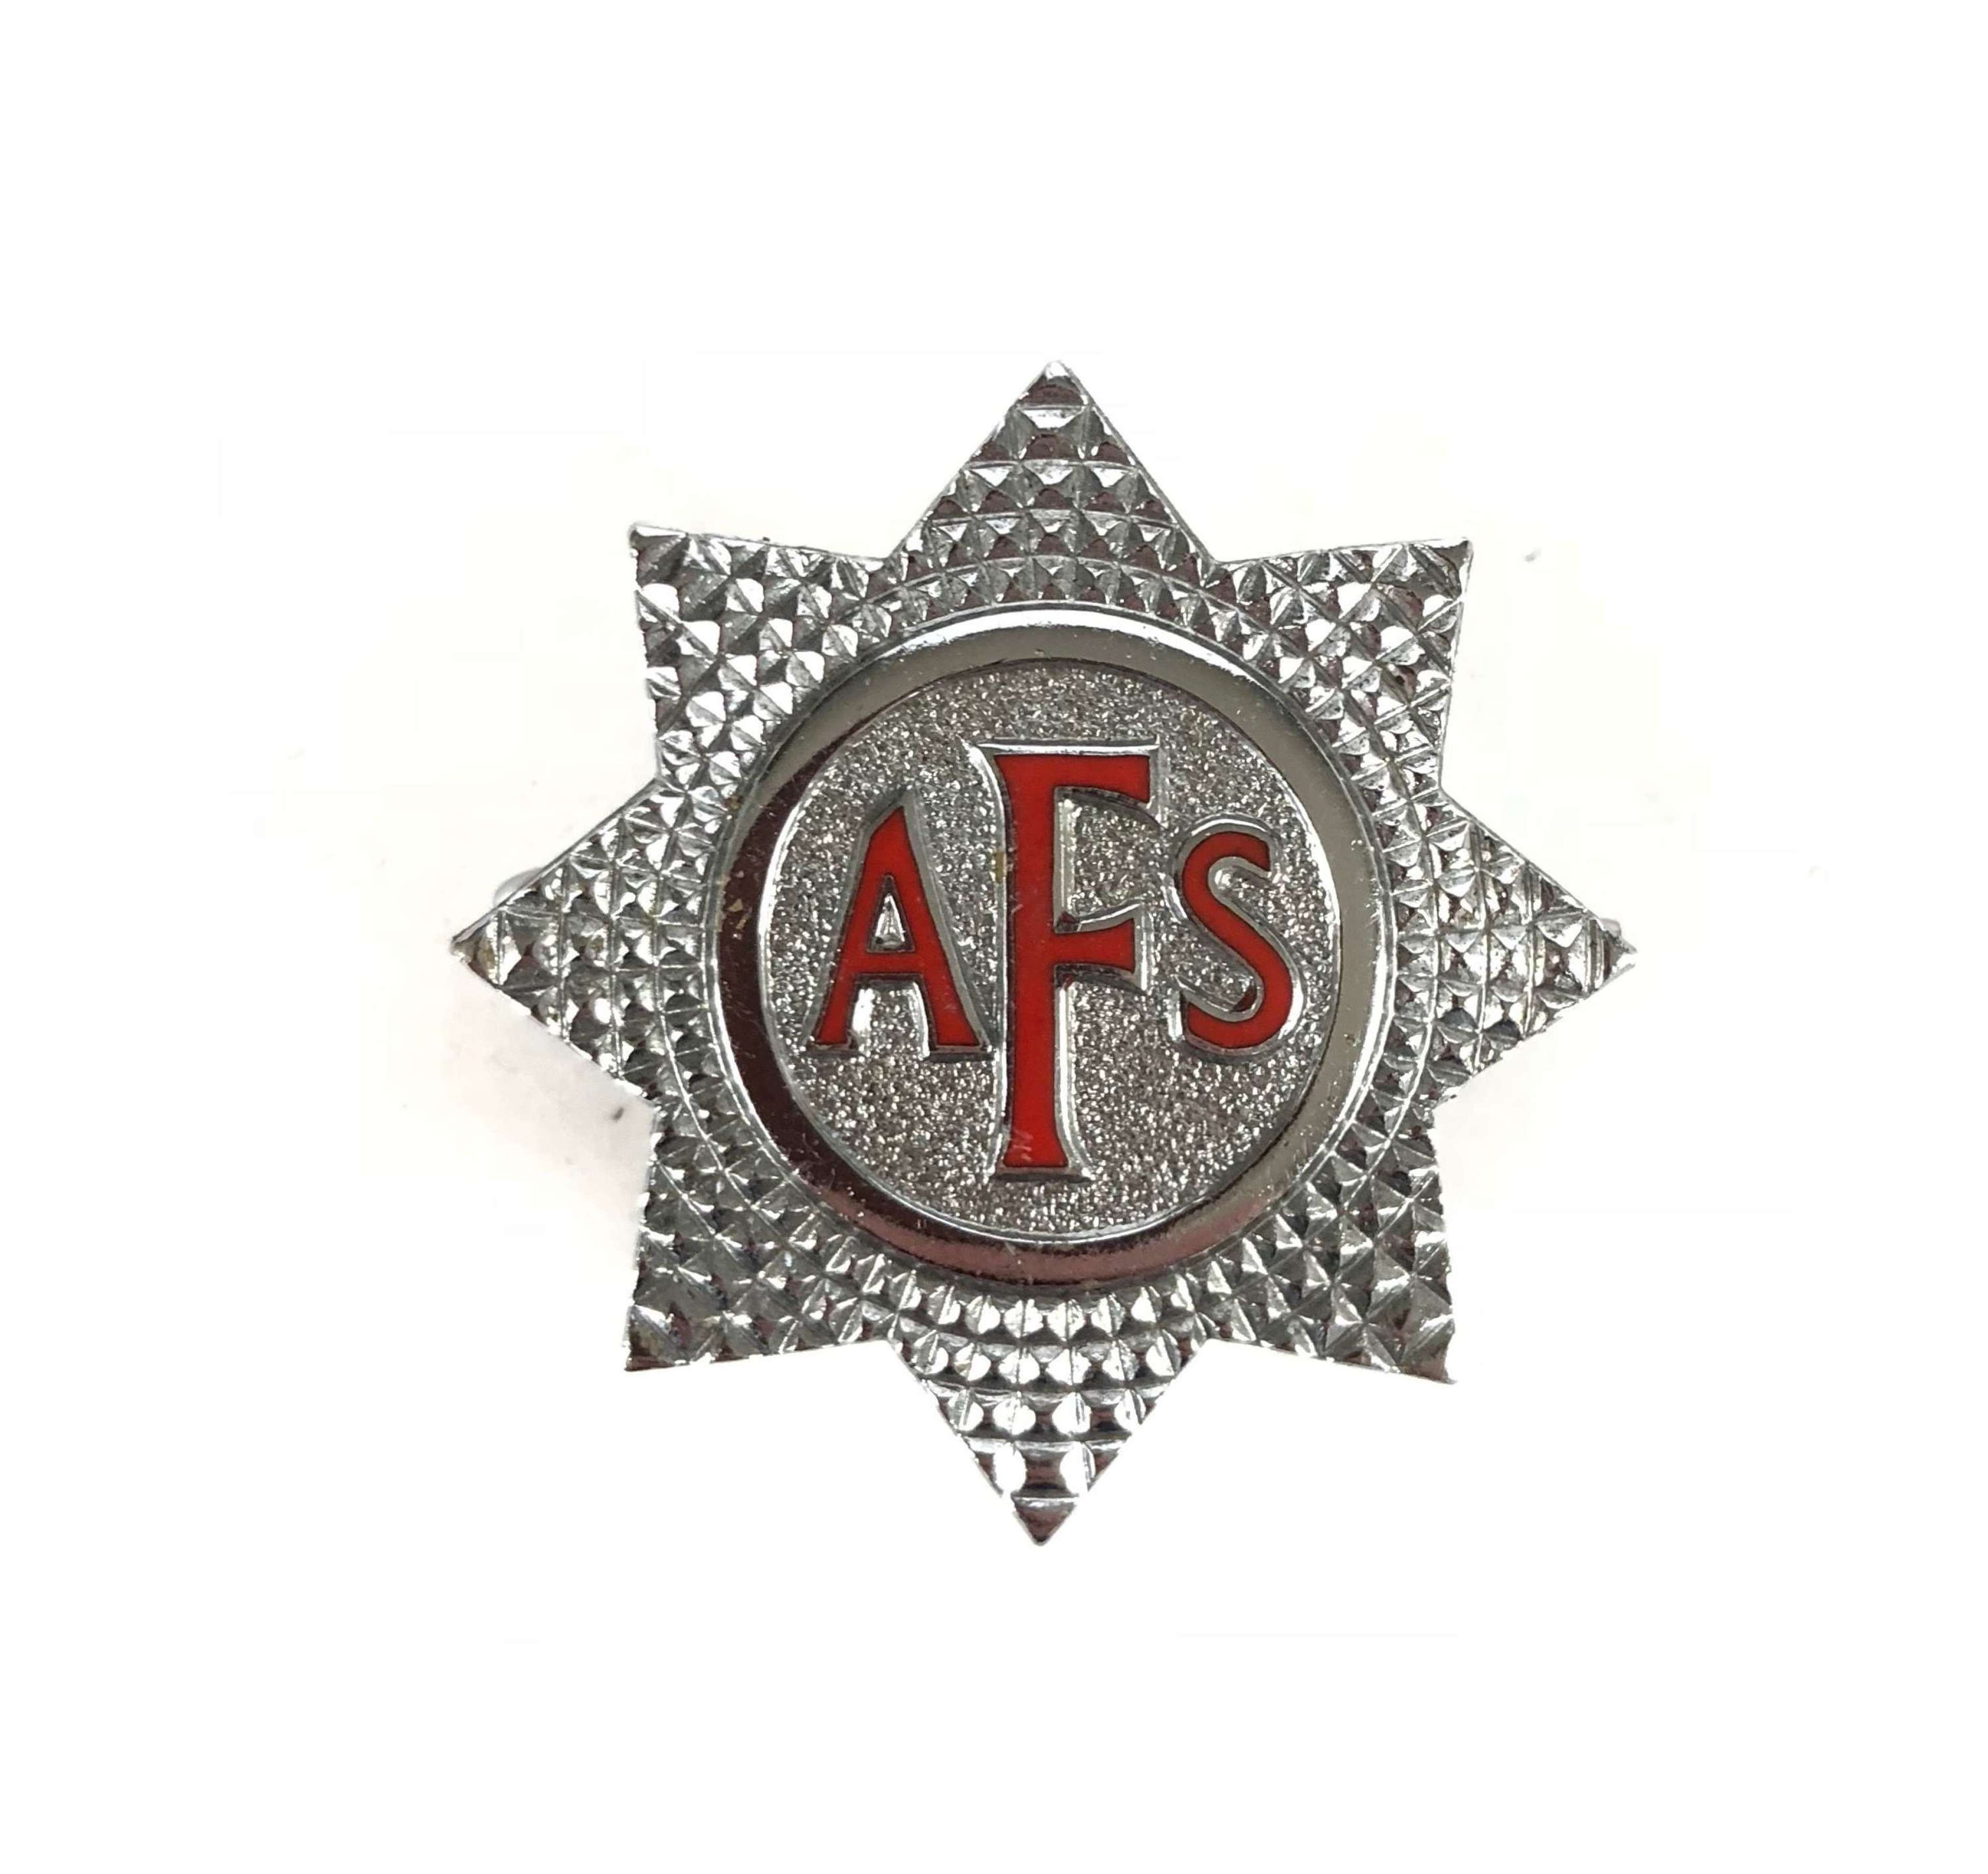 WW2 Auxiliary Fire Service Cap Badge.